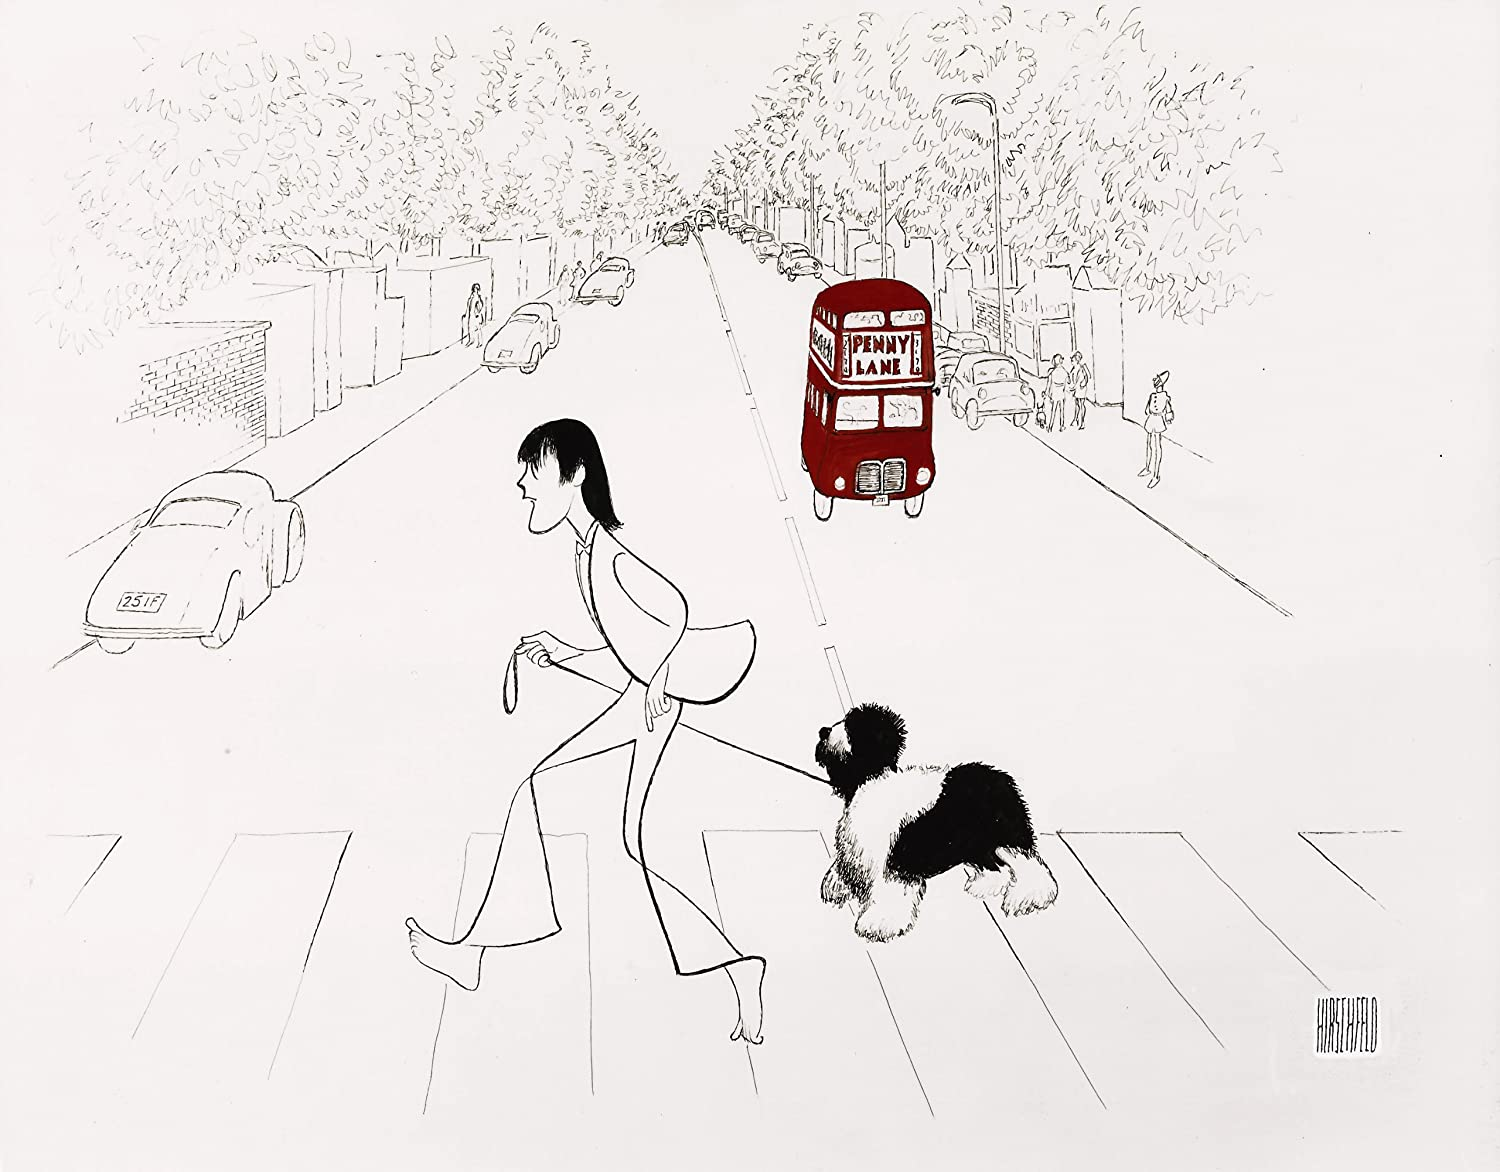 Hand Signed AL HIRSCHFELD, PAUL MCCARTNEY AND MARTHA IN LONDON CROSSING ABBEY ROAD, Limited-Edition Lithograph THE MARGO FEIDEN GALLERIES LTD. New York